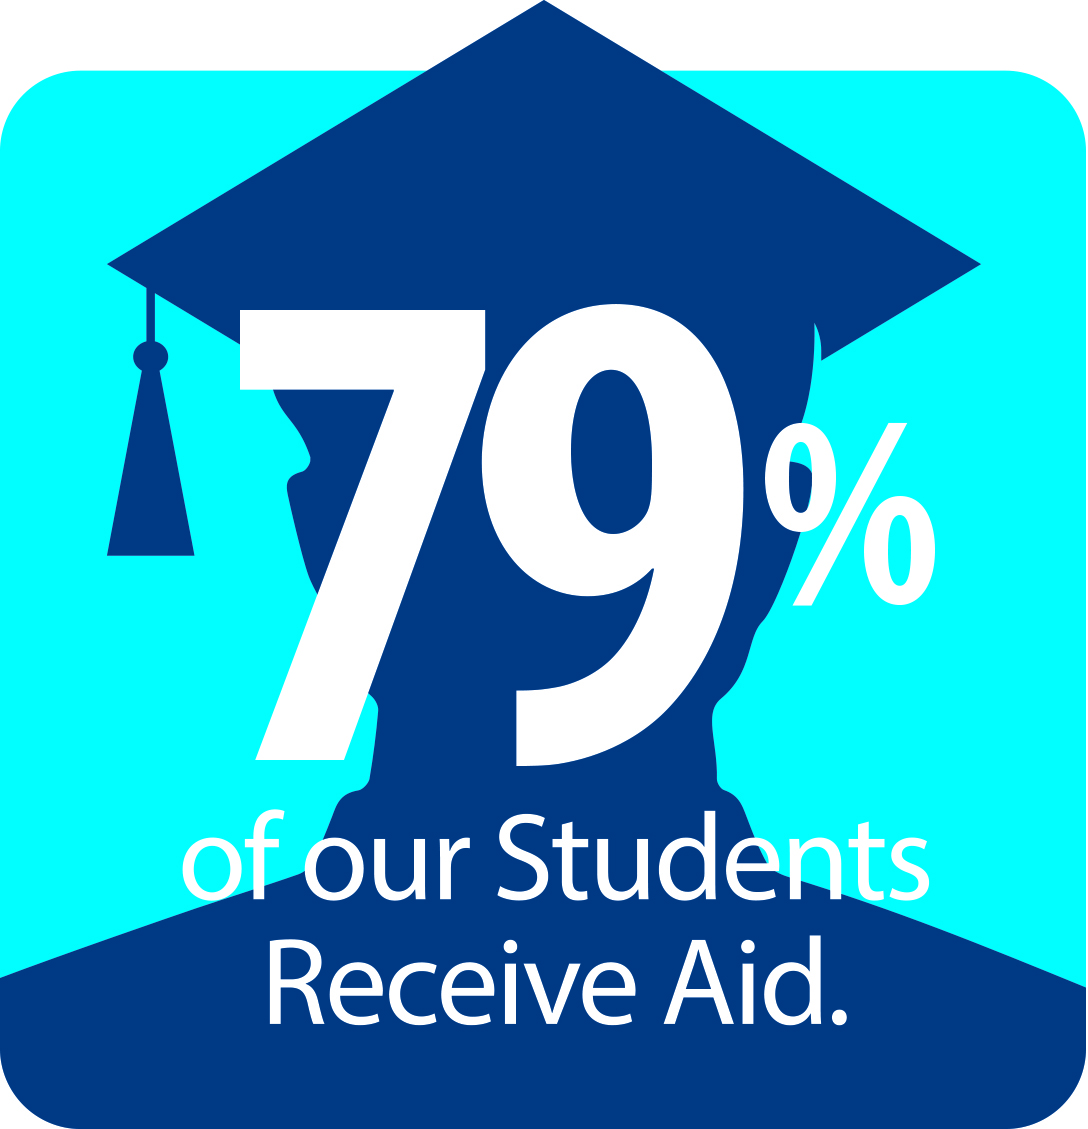 79% of our Students Receive Aid